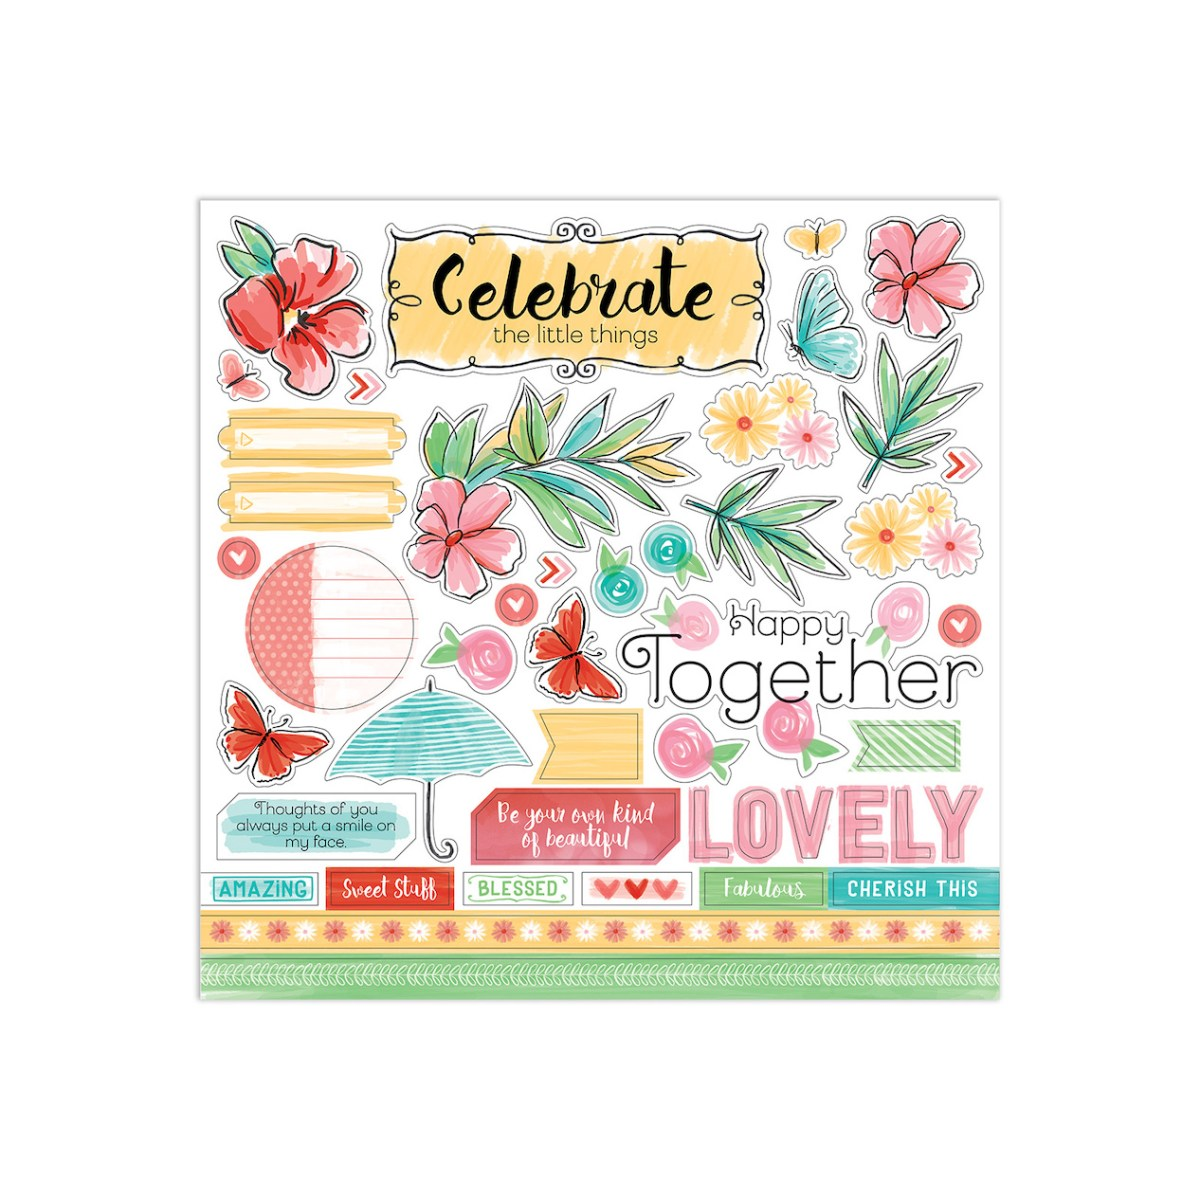 Brushed Paper Collection #closetomyheart #ctmh #ctmhbrushed #bringbackmypack #scrapbooking #cardmaking #papercrafting #crop #abuddingfriendship #yourownkindofwonderful #myacrylix #stamping